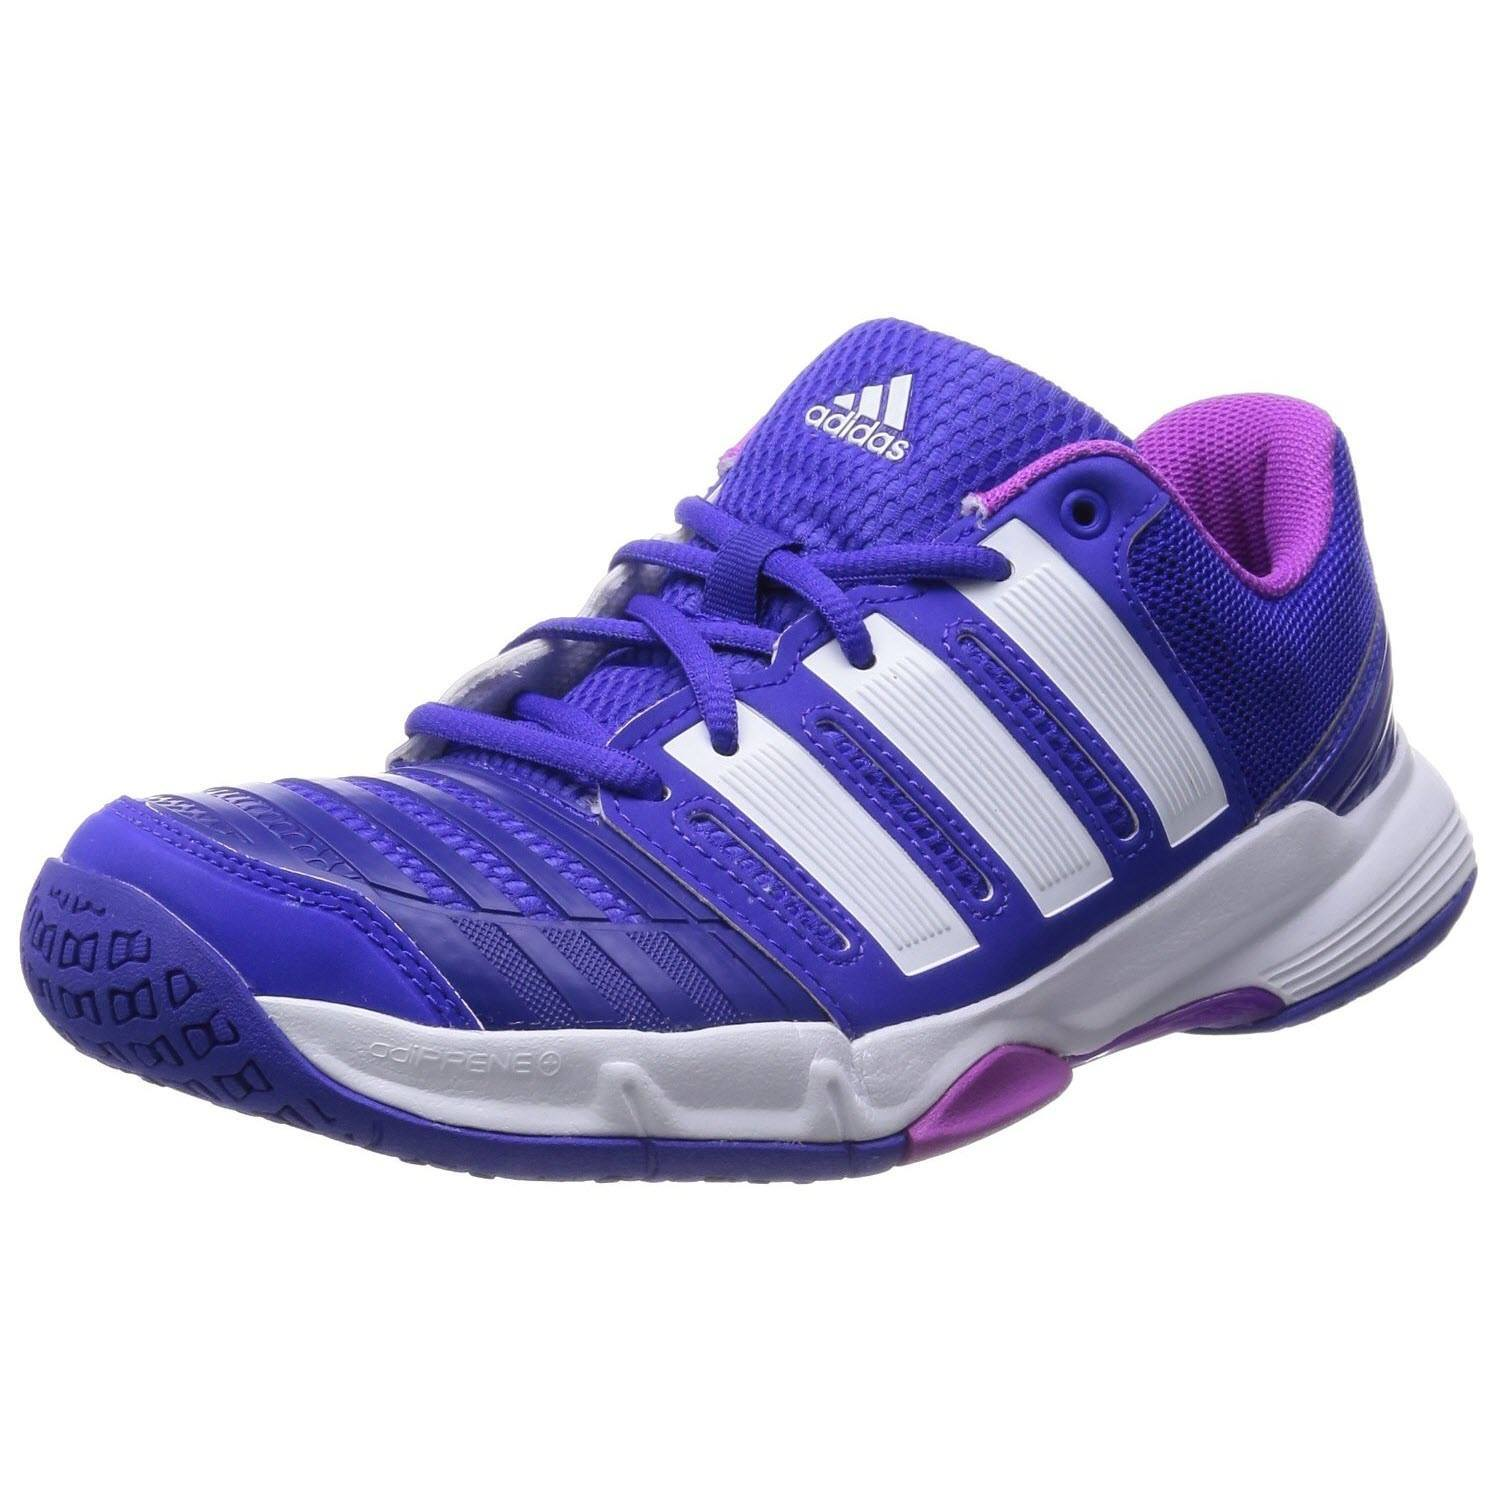 Adidas Court Stabil 11 Women